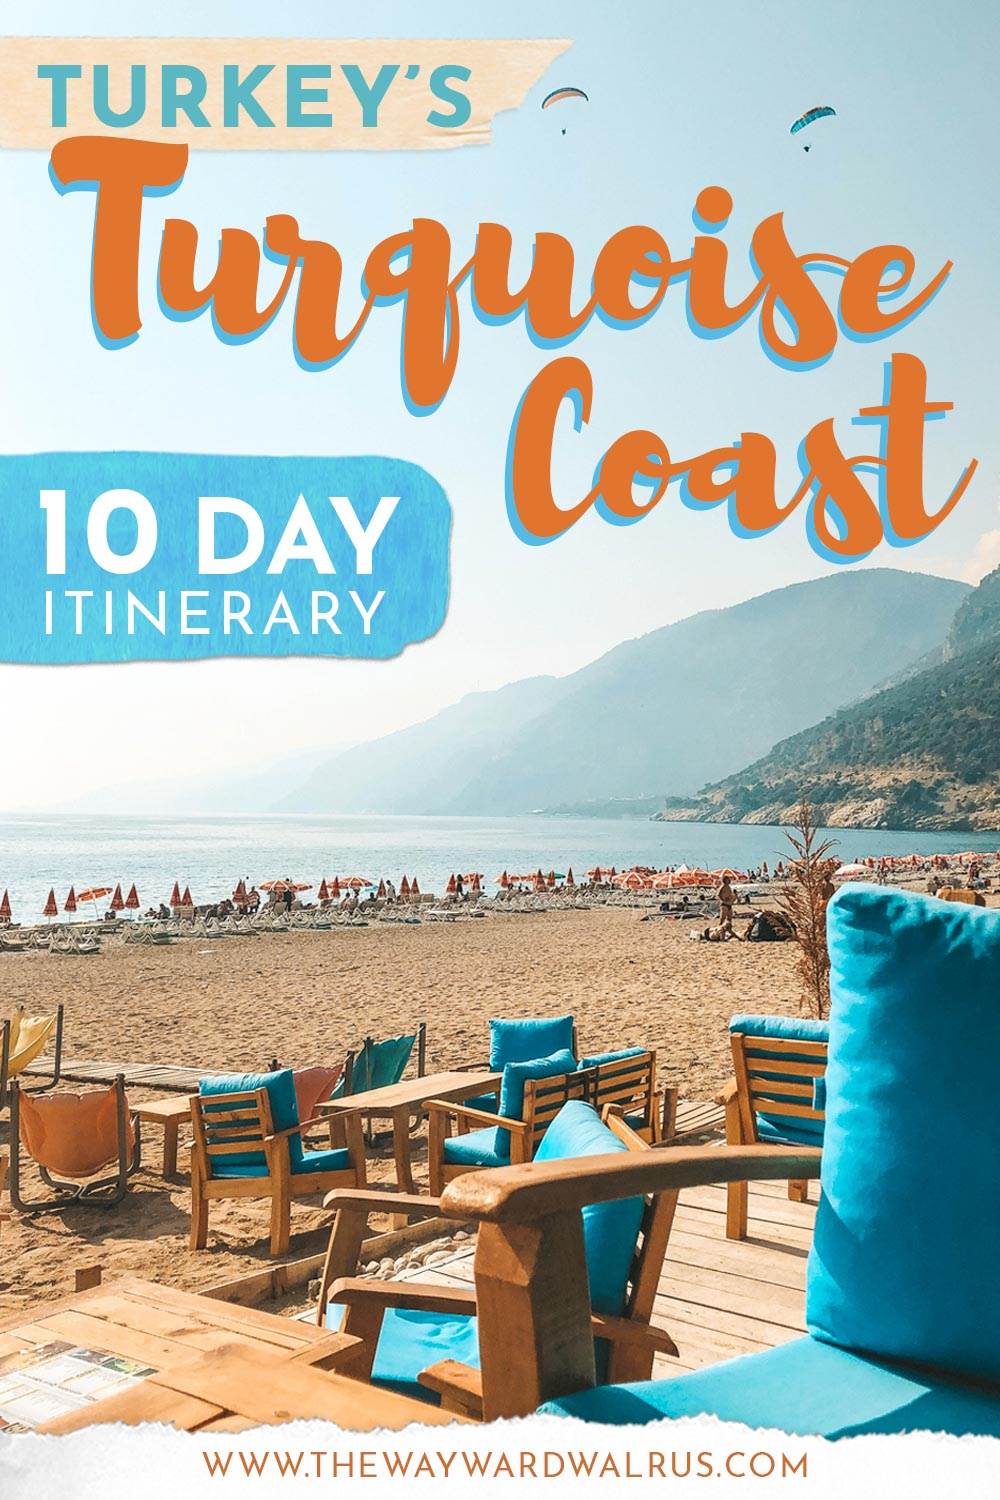 Everything you need to know about visiting Turkey's beautiful Turquoise Coast. Travel guide includes Turquoise Coast travel route, top things to do, 10 day sample itinerary, bus travel tips for Turkey and how to reach each destination via public transportation. #TurquoiseCoast #TurkishRiviera #TheWaywardWalrus